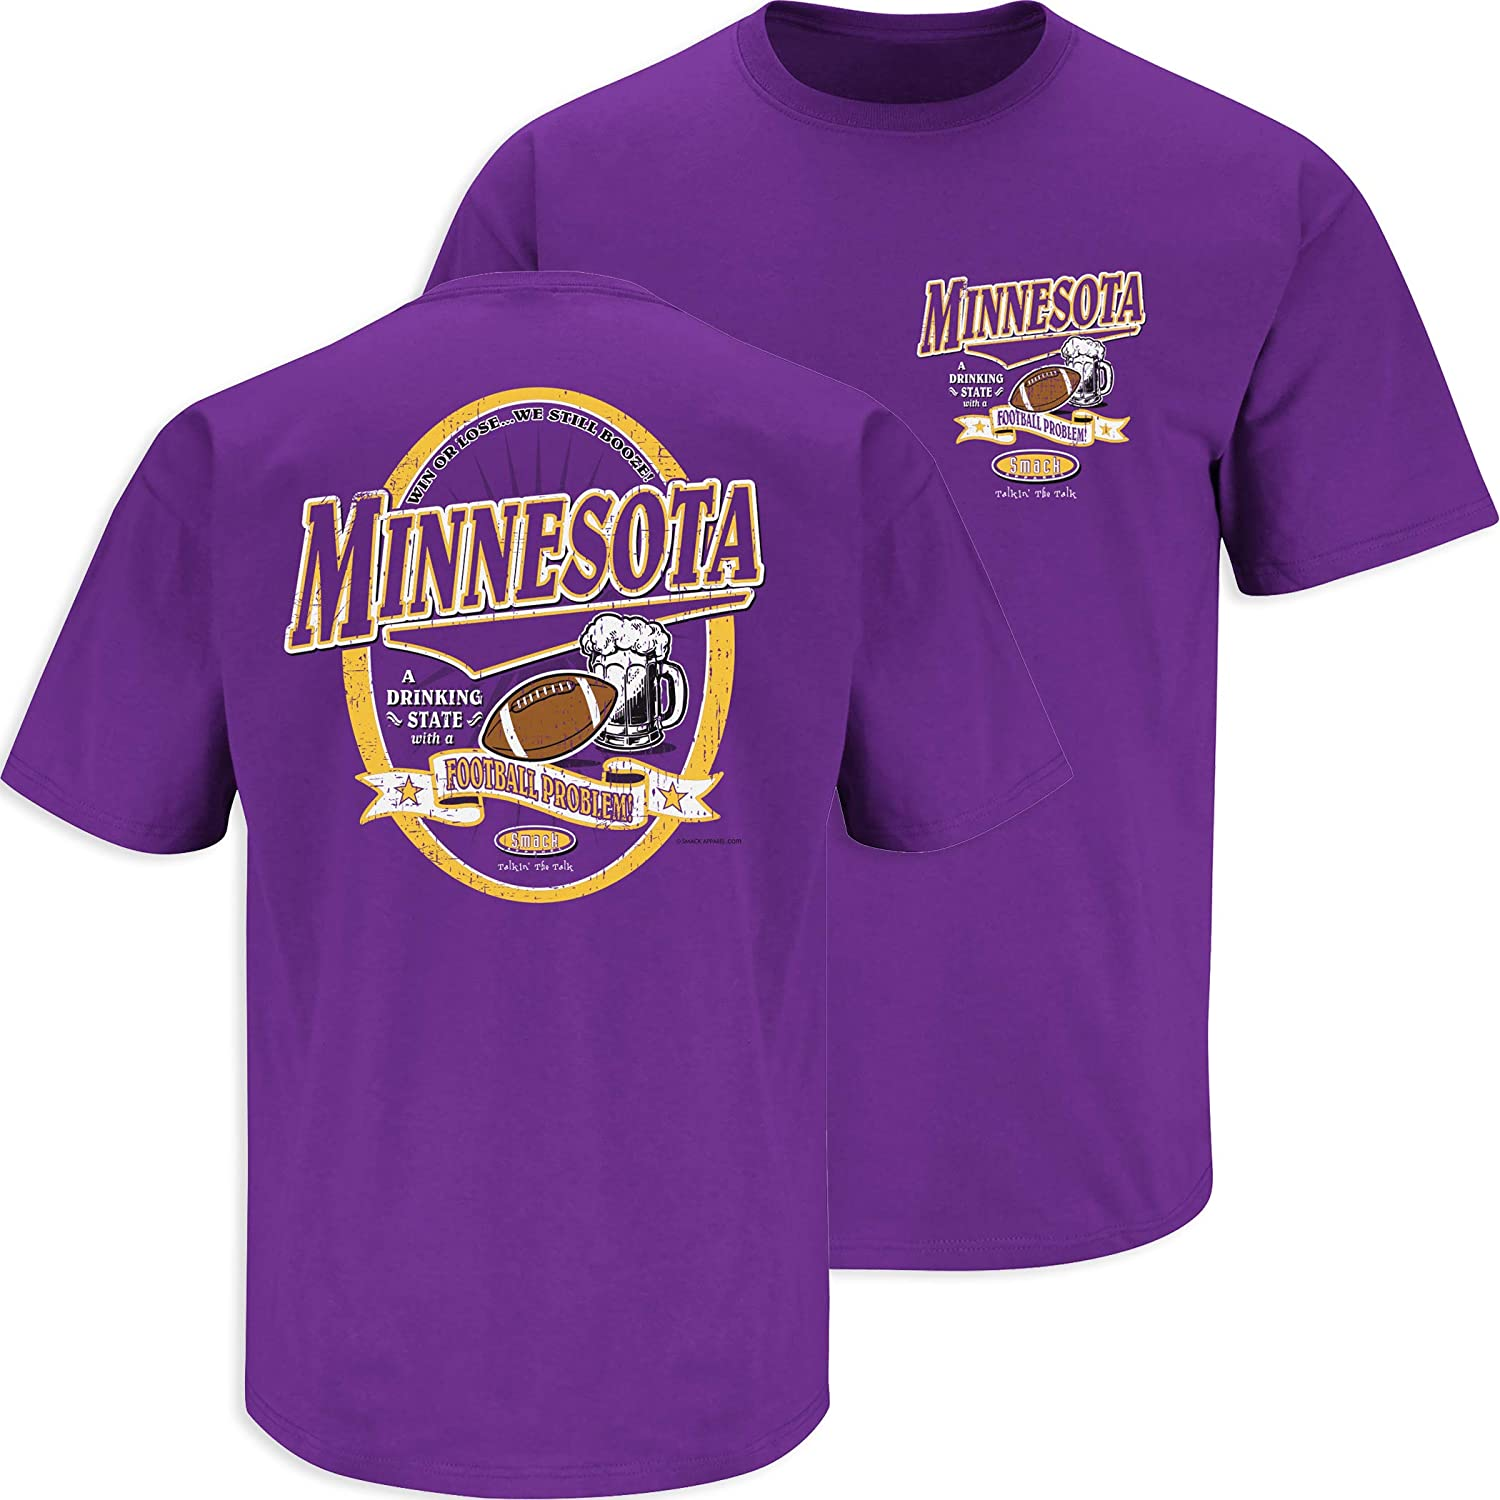 Sm-5X Smack Apparel Minnesota Football Fans A Drinking State with a Football Problem Purple T-Shirt